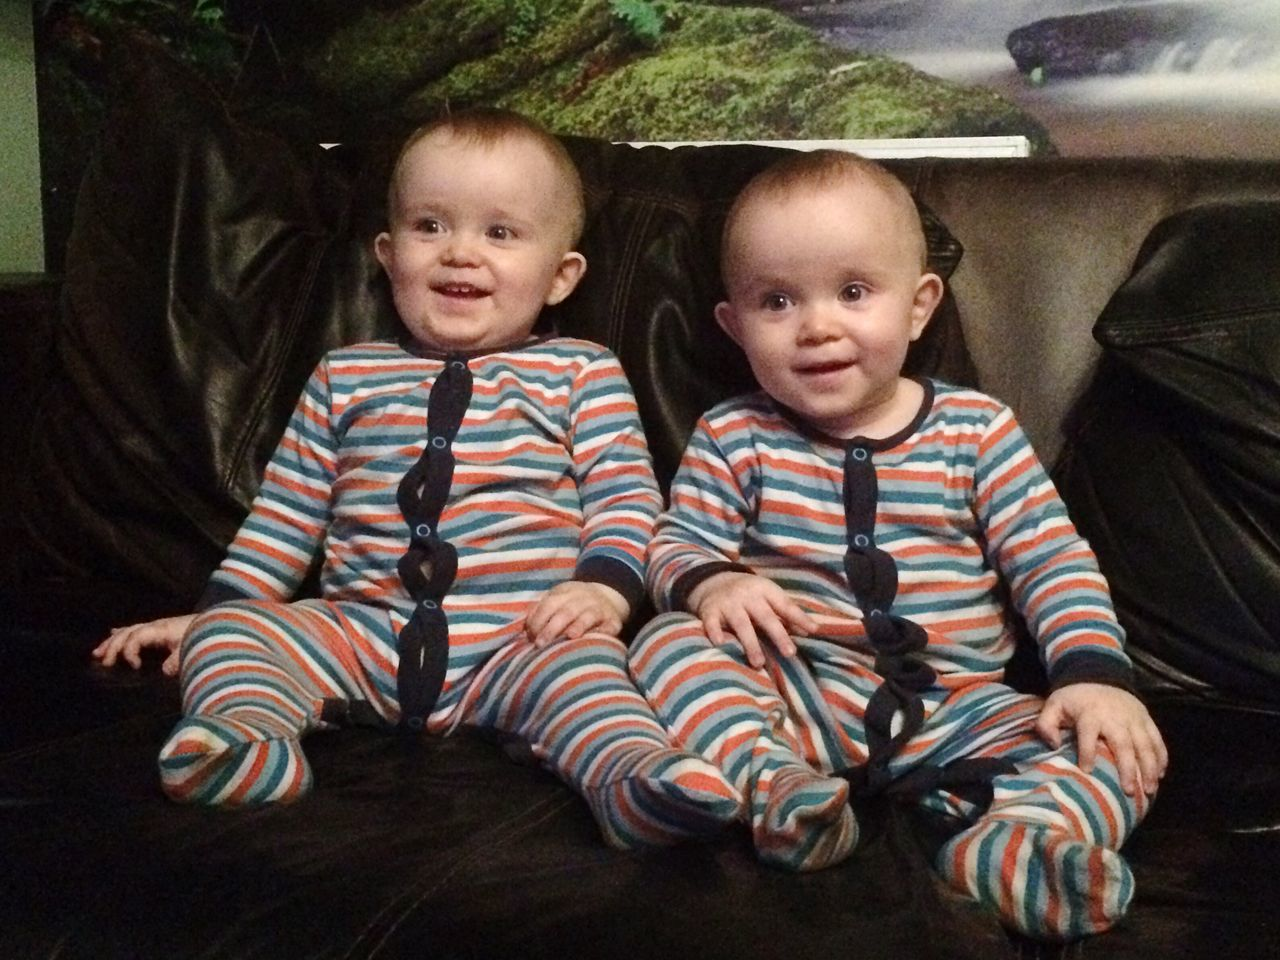 TWINS ♥ Babyboy Togetherness Bonding Childhood Innocence Family Heaven No Edit, No Filter, Just Photography IDENTICAL TWINS Identical  Twin twins Twinsies! Twins (:  Twins! Twin Boys Boys Two Of A Kind Two Is Better Than One Two Boys Fresh On Eyeem  Enjoy The New Normal